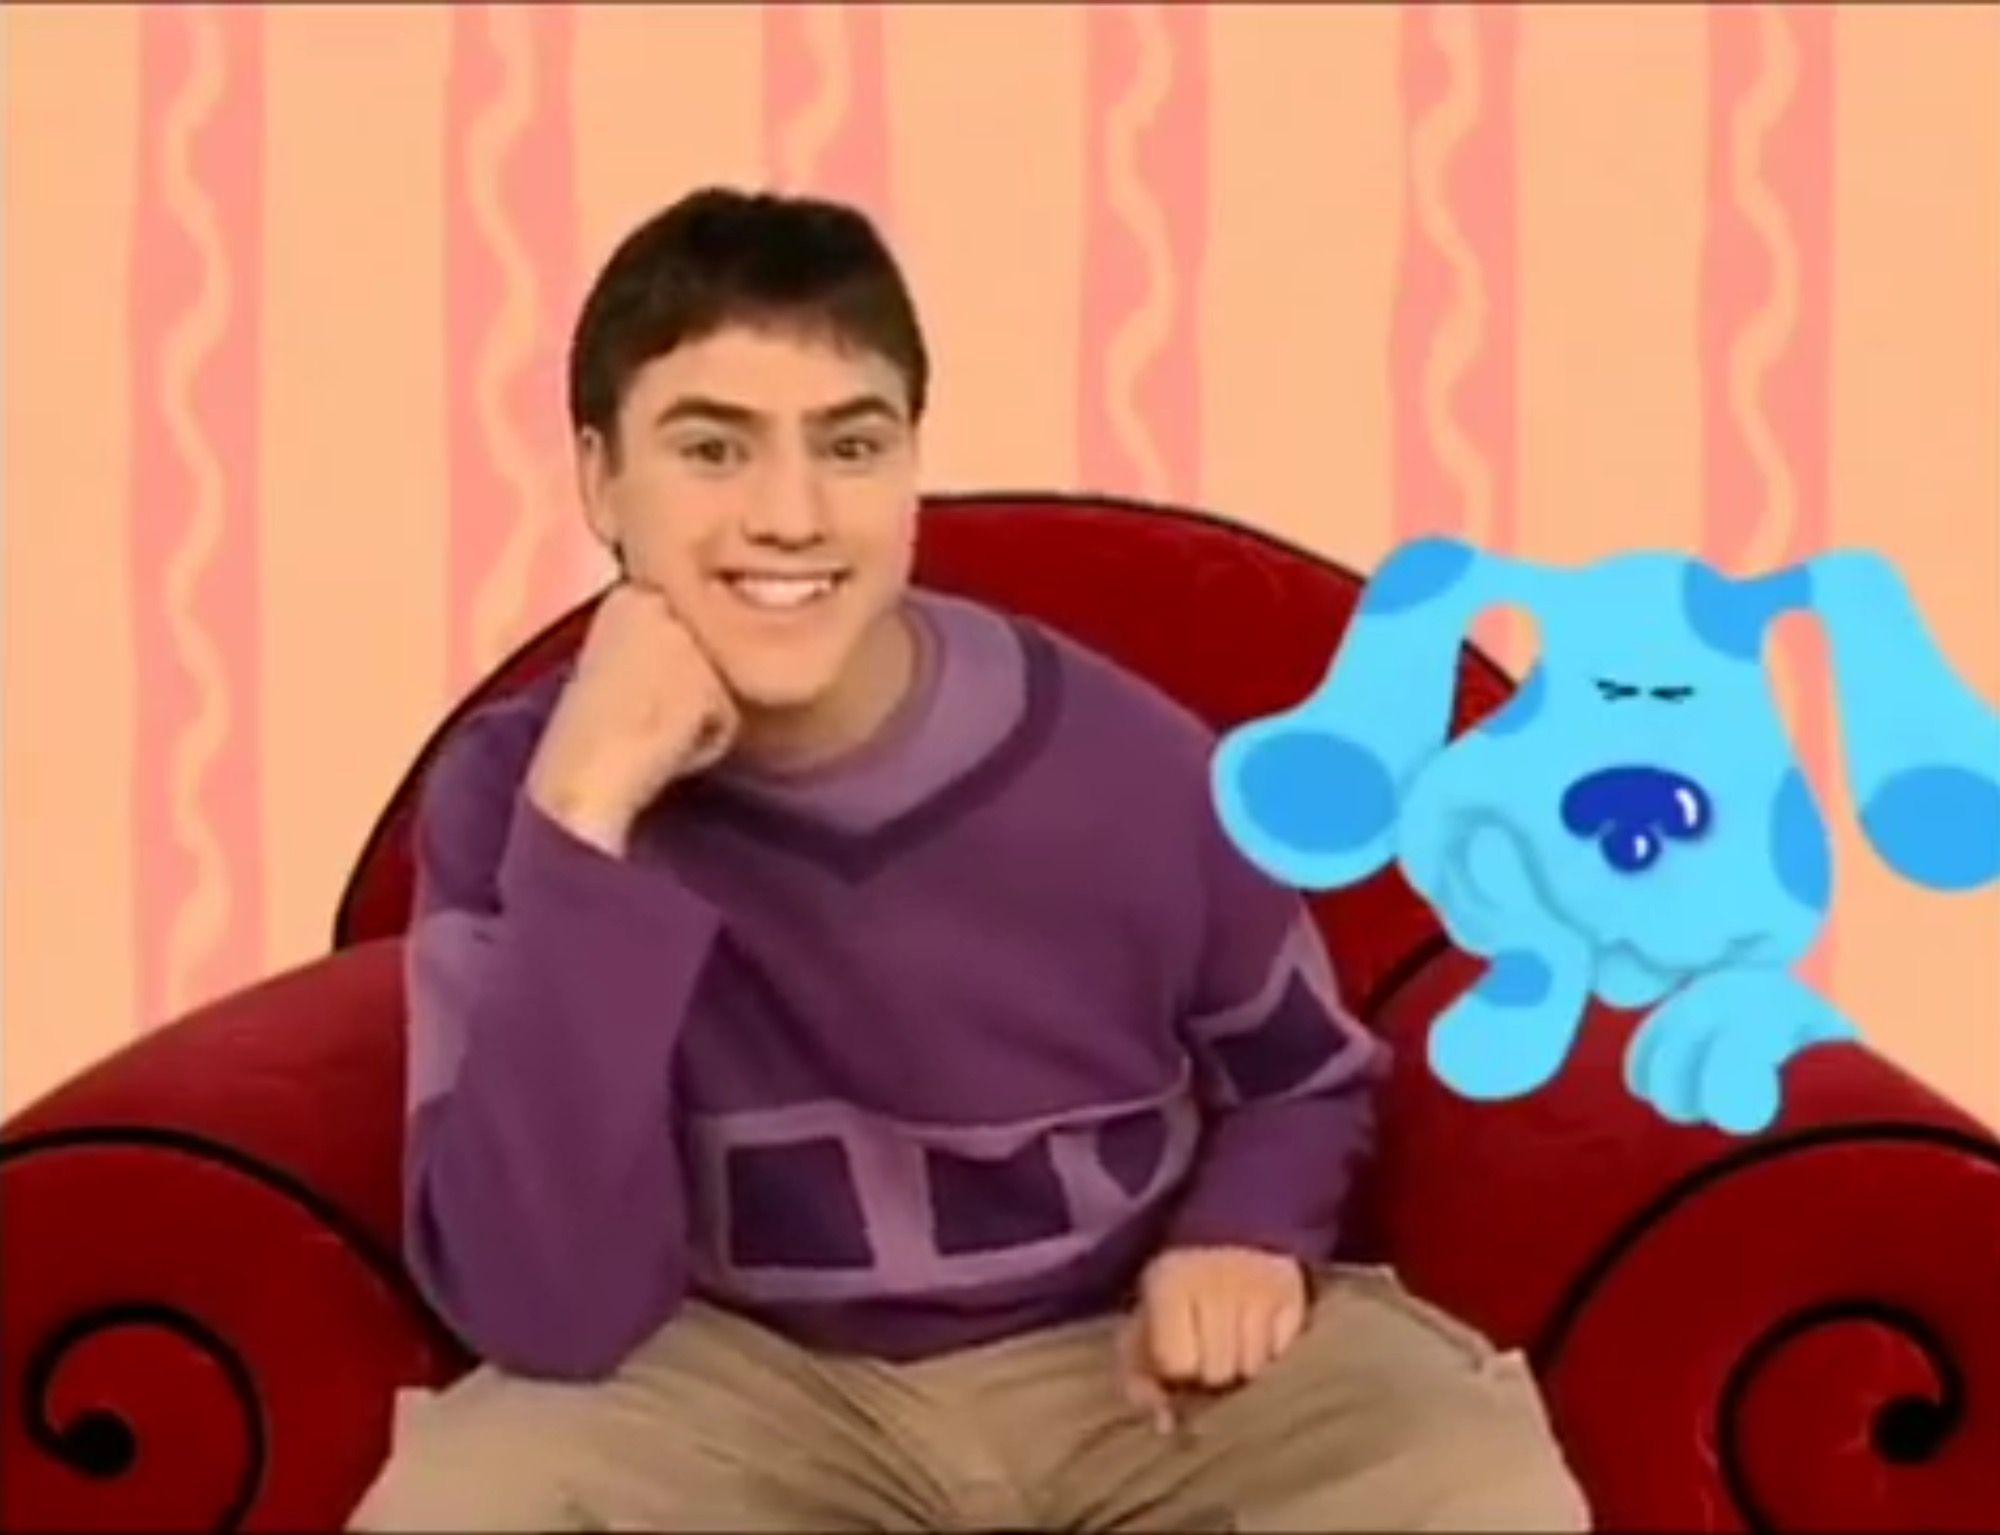 Blues clues thinking chair - You Know What To Do Sit Down In Our Thinking Chair And Think Think